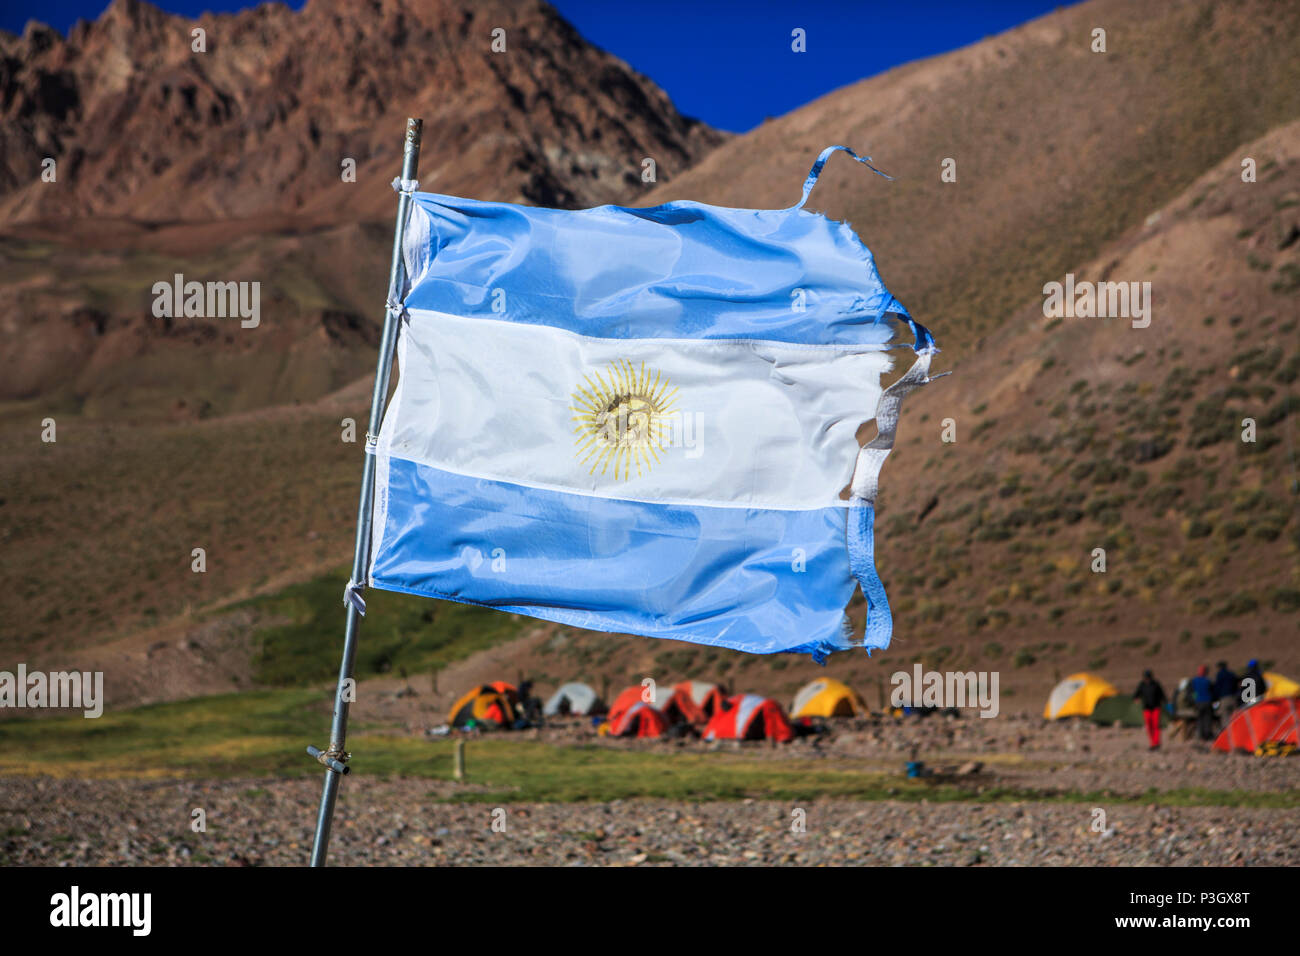 Argentinian flag waving in front of campsite on approach hike to Aconcagua in Mendoza, Argentina - Stock Image